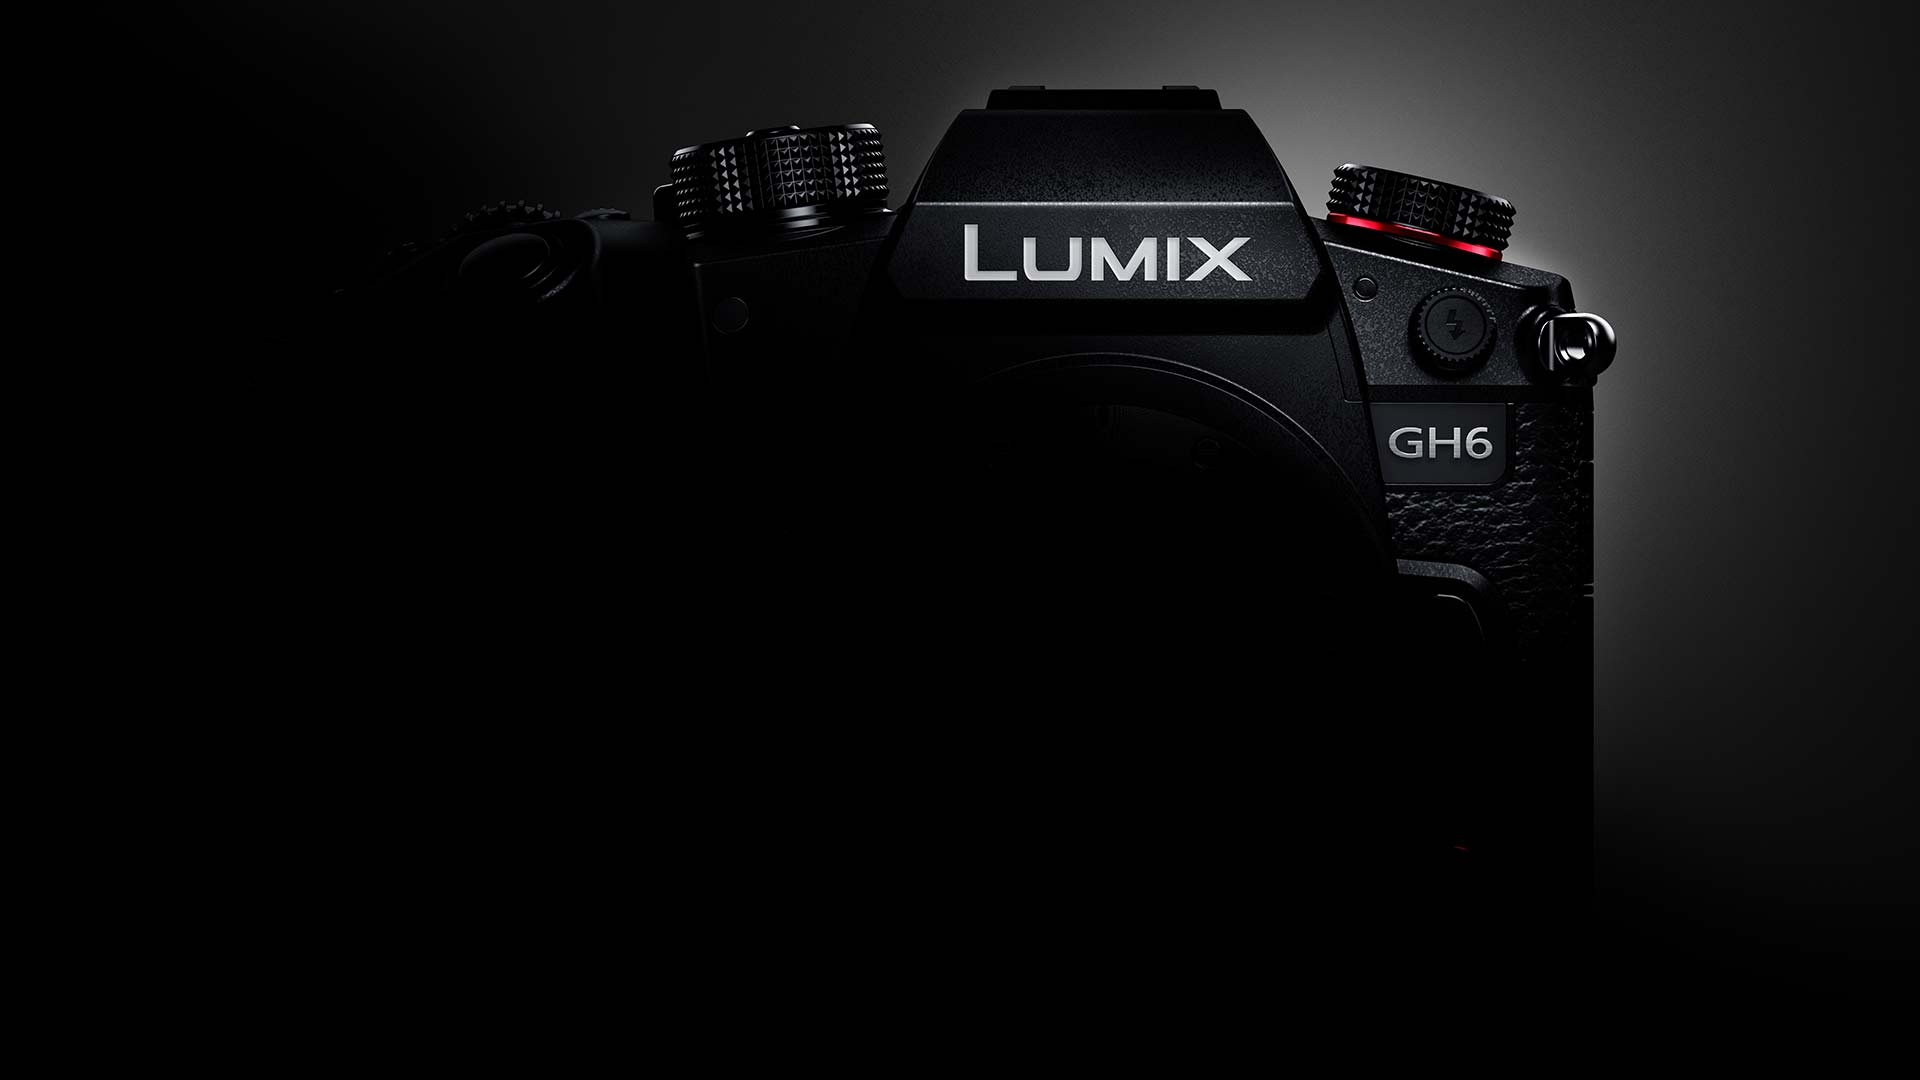 The LUMIX GH6 is coming. Image: Panasonic.